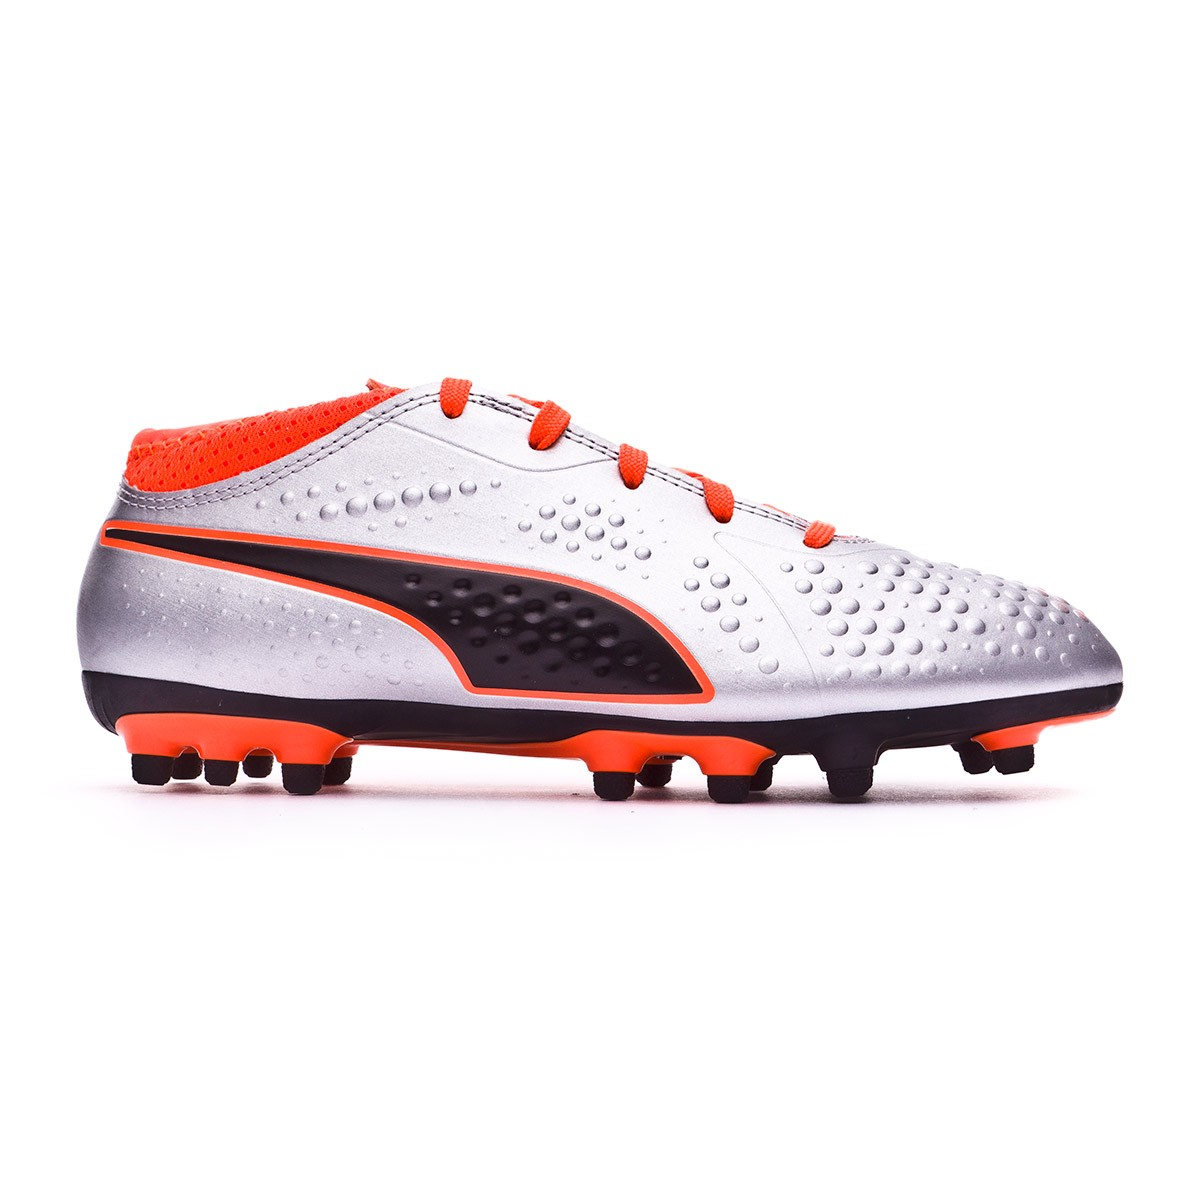 timeless design e773b 58e8c Chaussure de foot Puma One 4 AG enfant Puma silver-Shocking orange-Puma  black - Boutique de football Fútbol Emotion